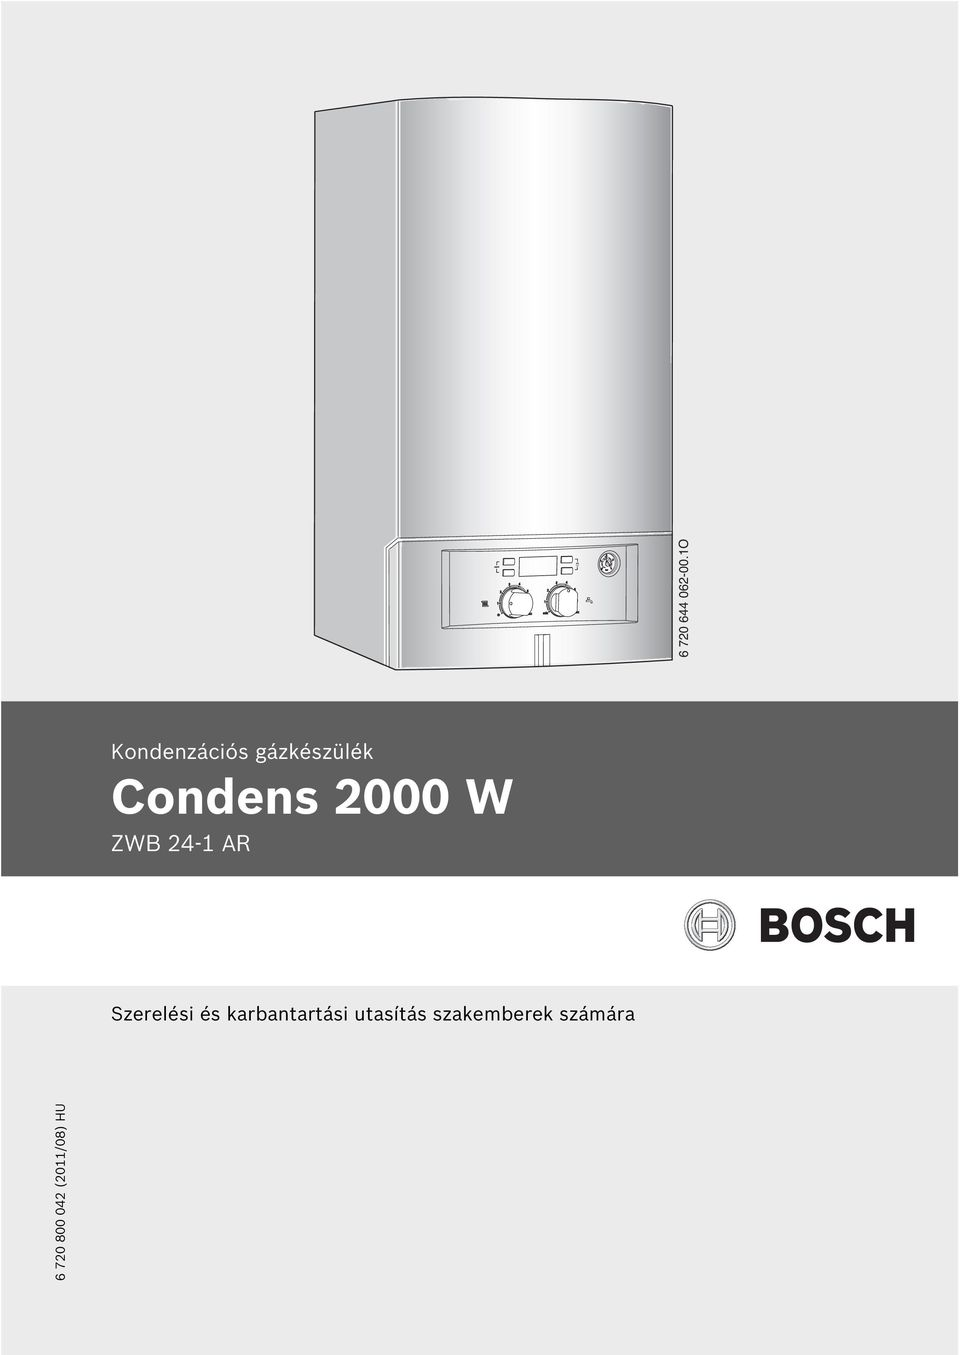 Condens 2000 W ZWB 24-1 AR